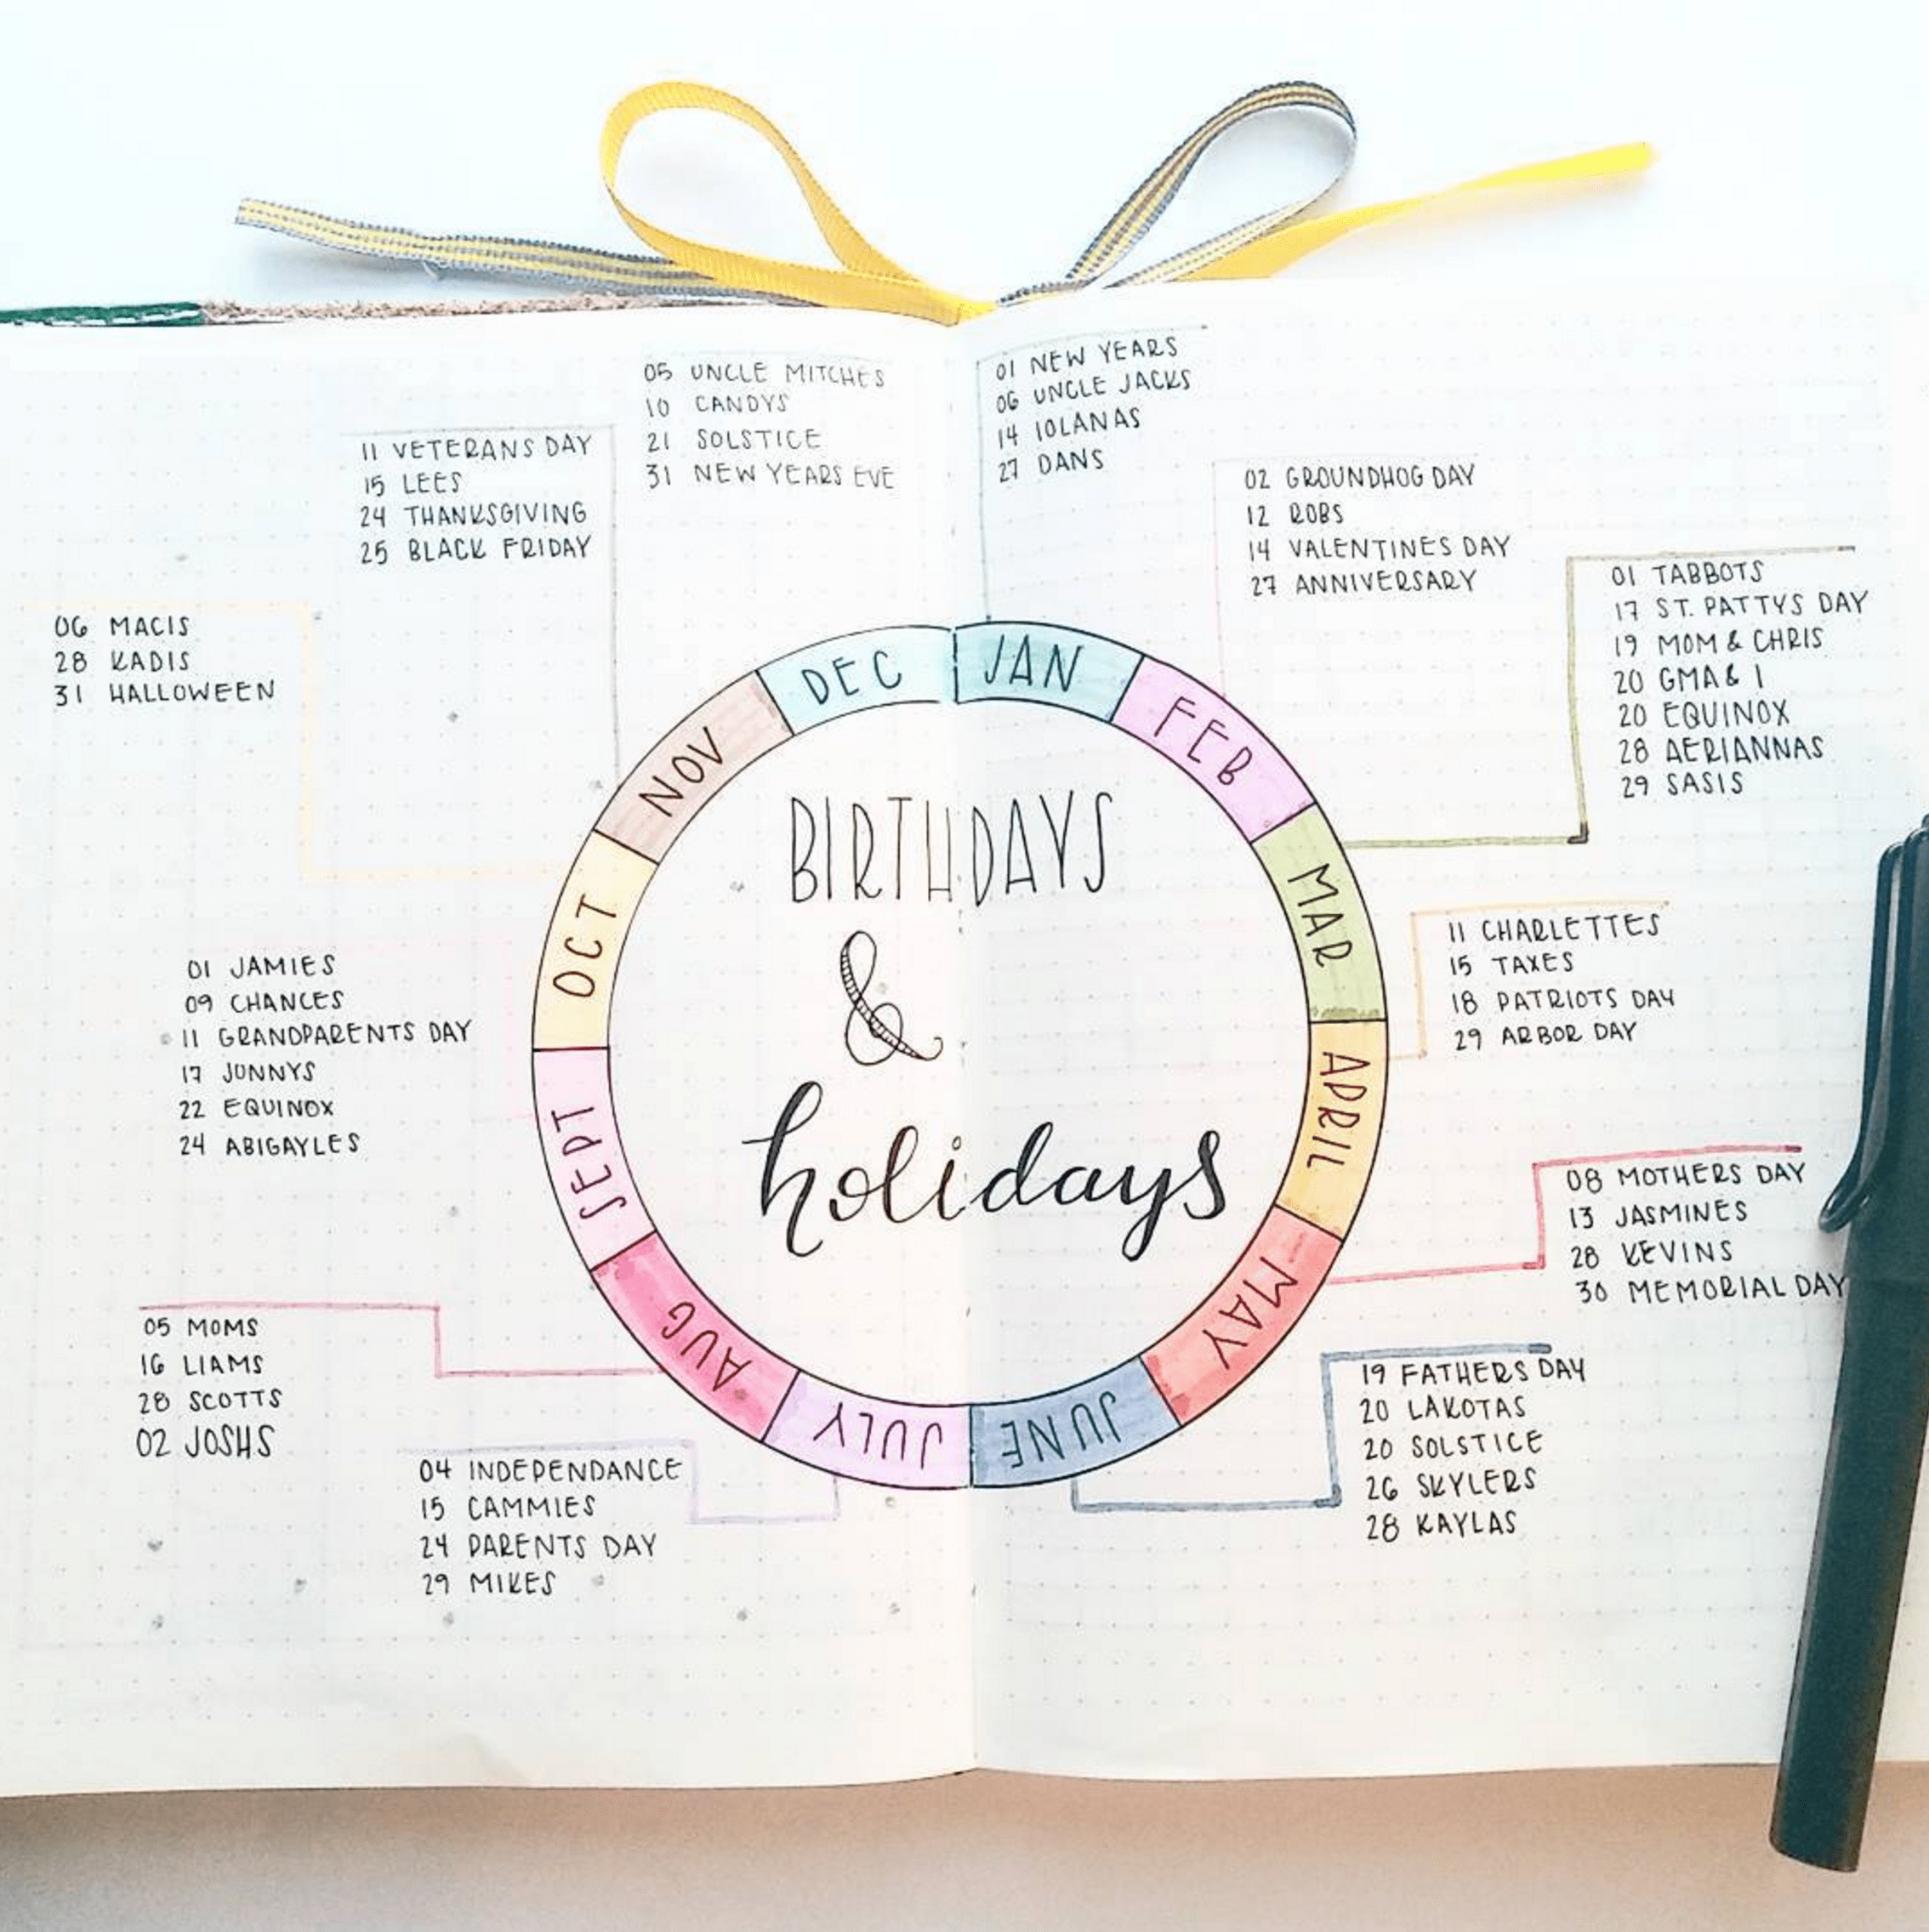 {bullet journal} So startest du dein eigenes Bullet Journal - Die Basics